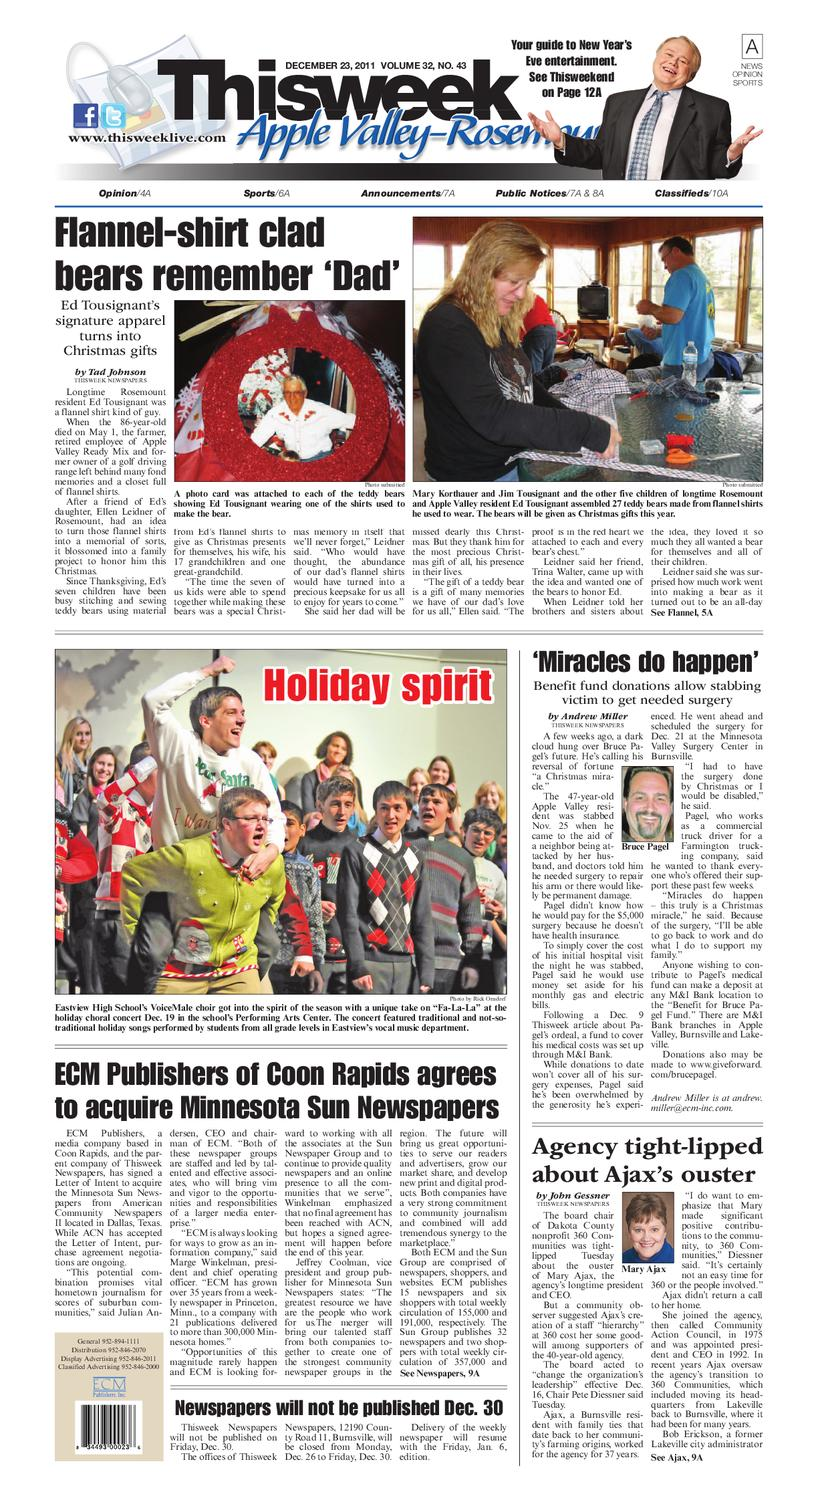 Apple Valley/Rosemount: Thisweek Newspapers by Sun Thisweek